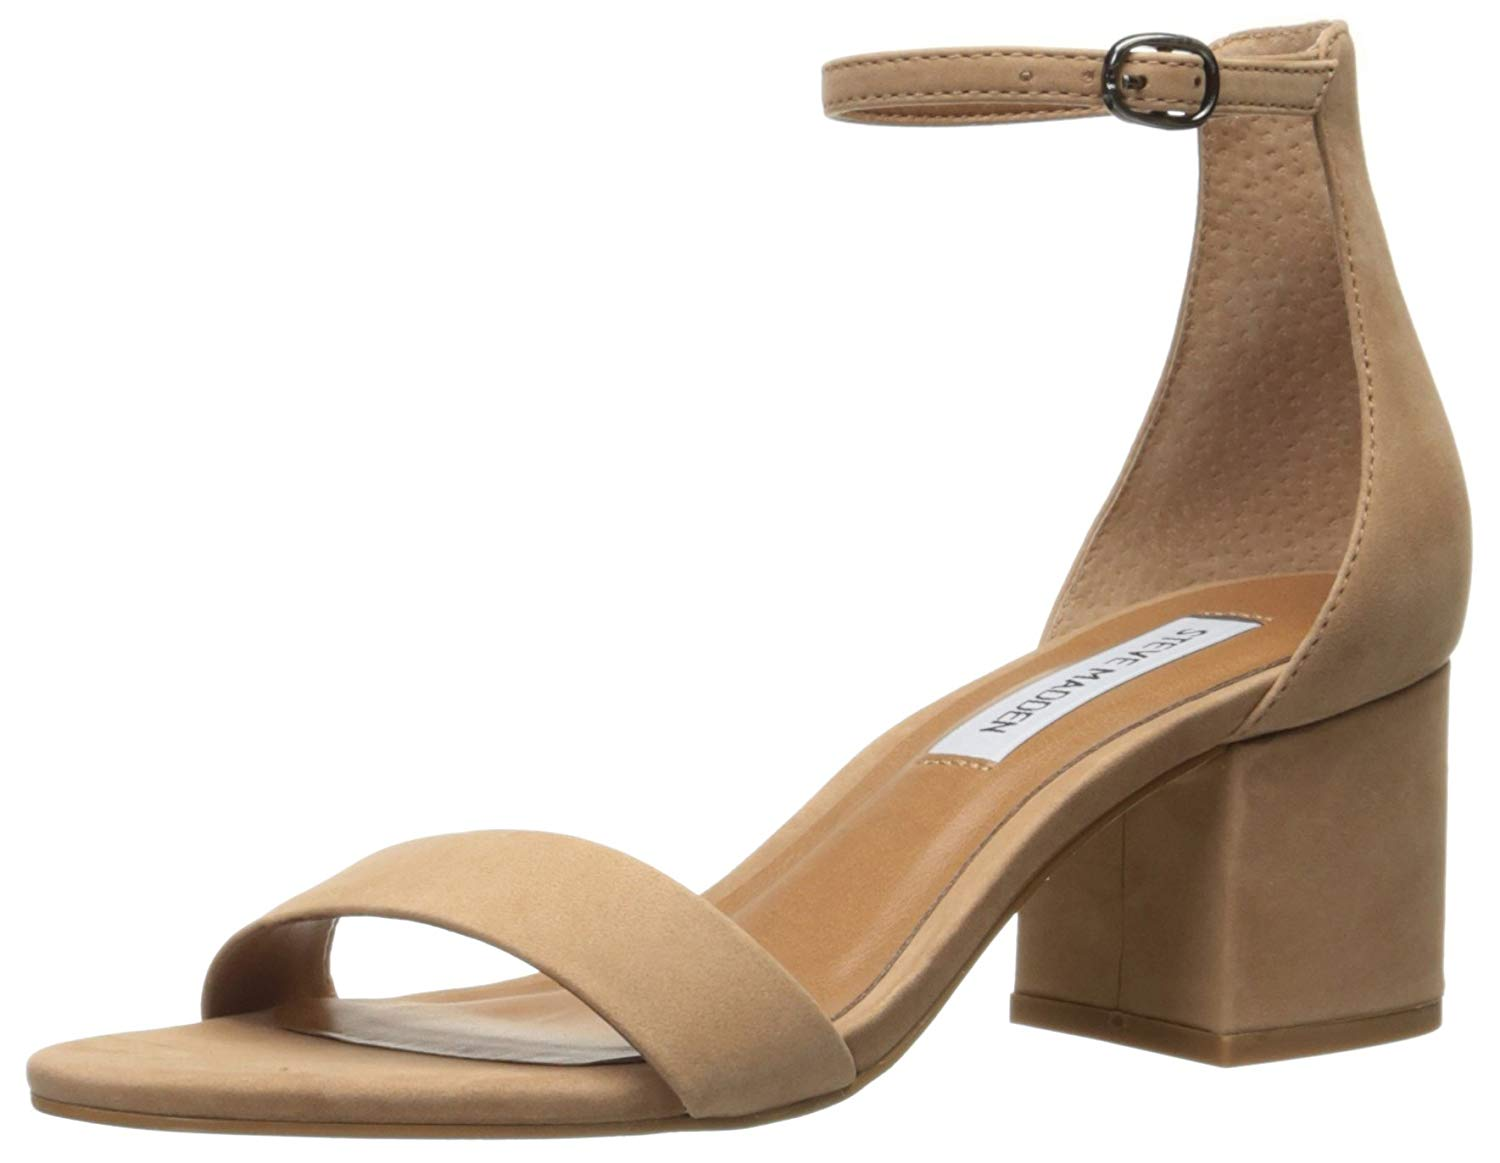 094c5211d67 Details about Steve Madden Womens Irenee Suede Open Toe Formal Ankle, Tan  Nubuck, Size 11.0 gn